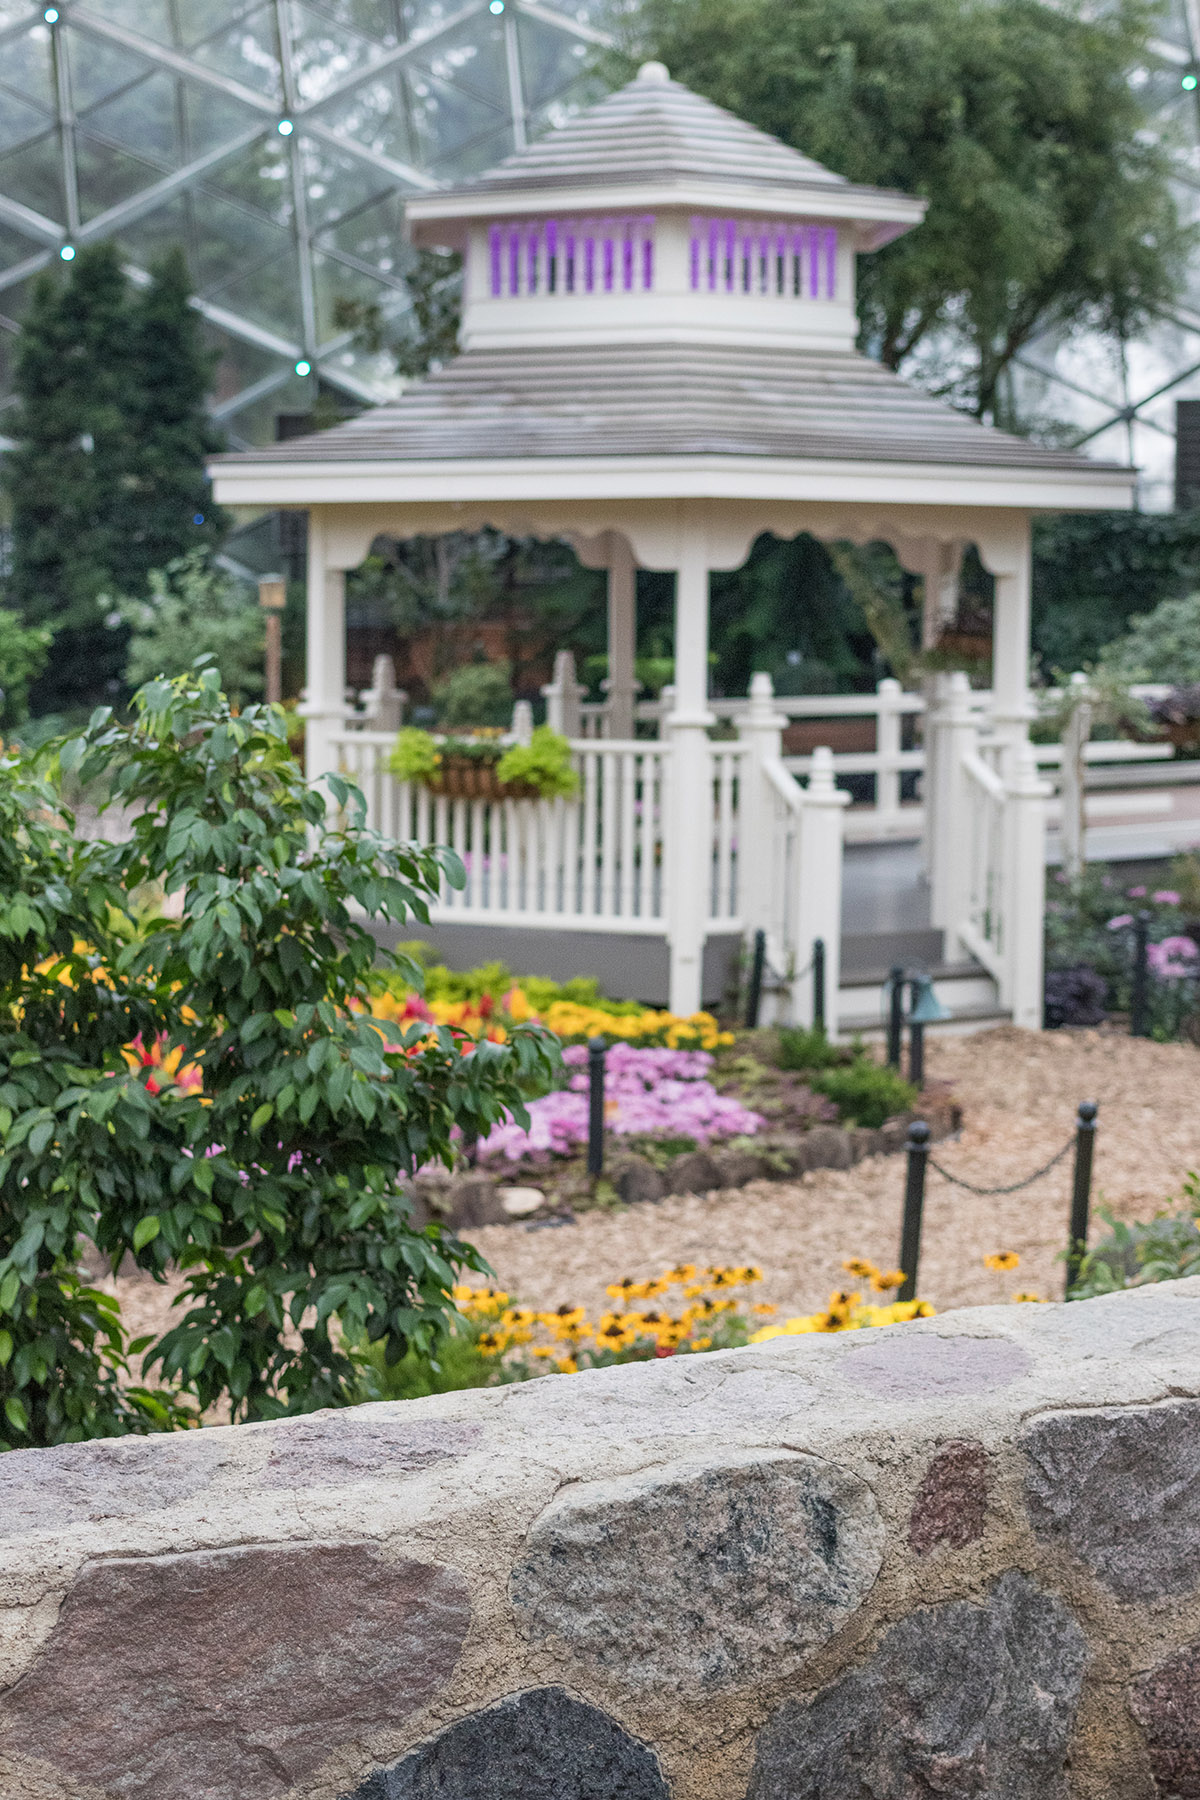 Hundred Acre Wood Fall Floral Show at the Mitchell Park Domes, Milwaukee, WI